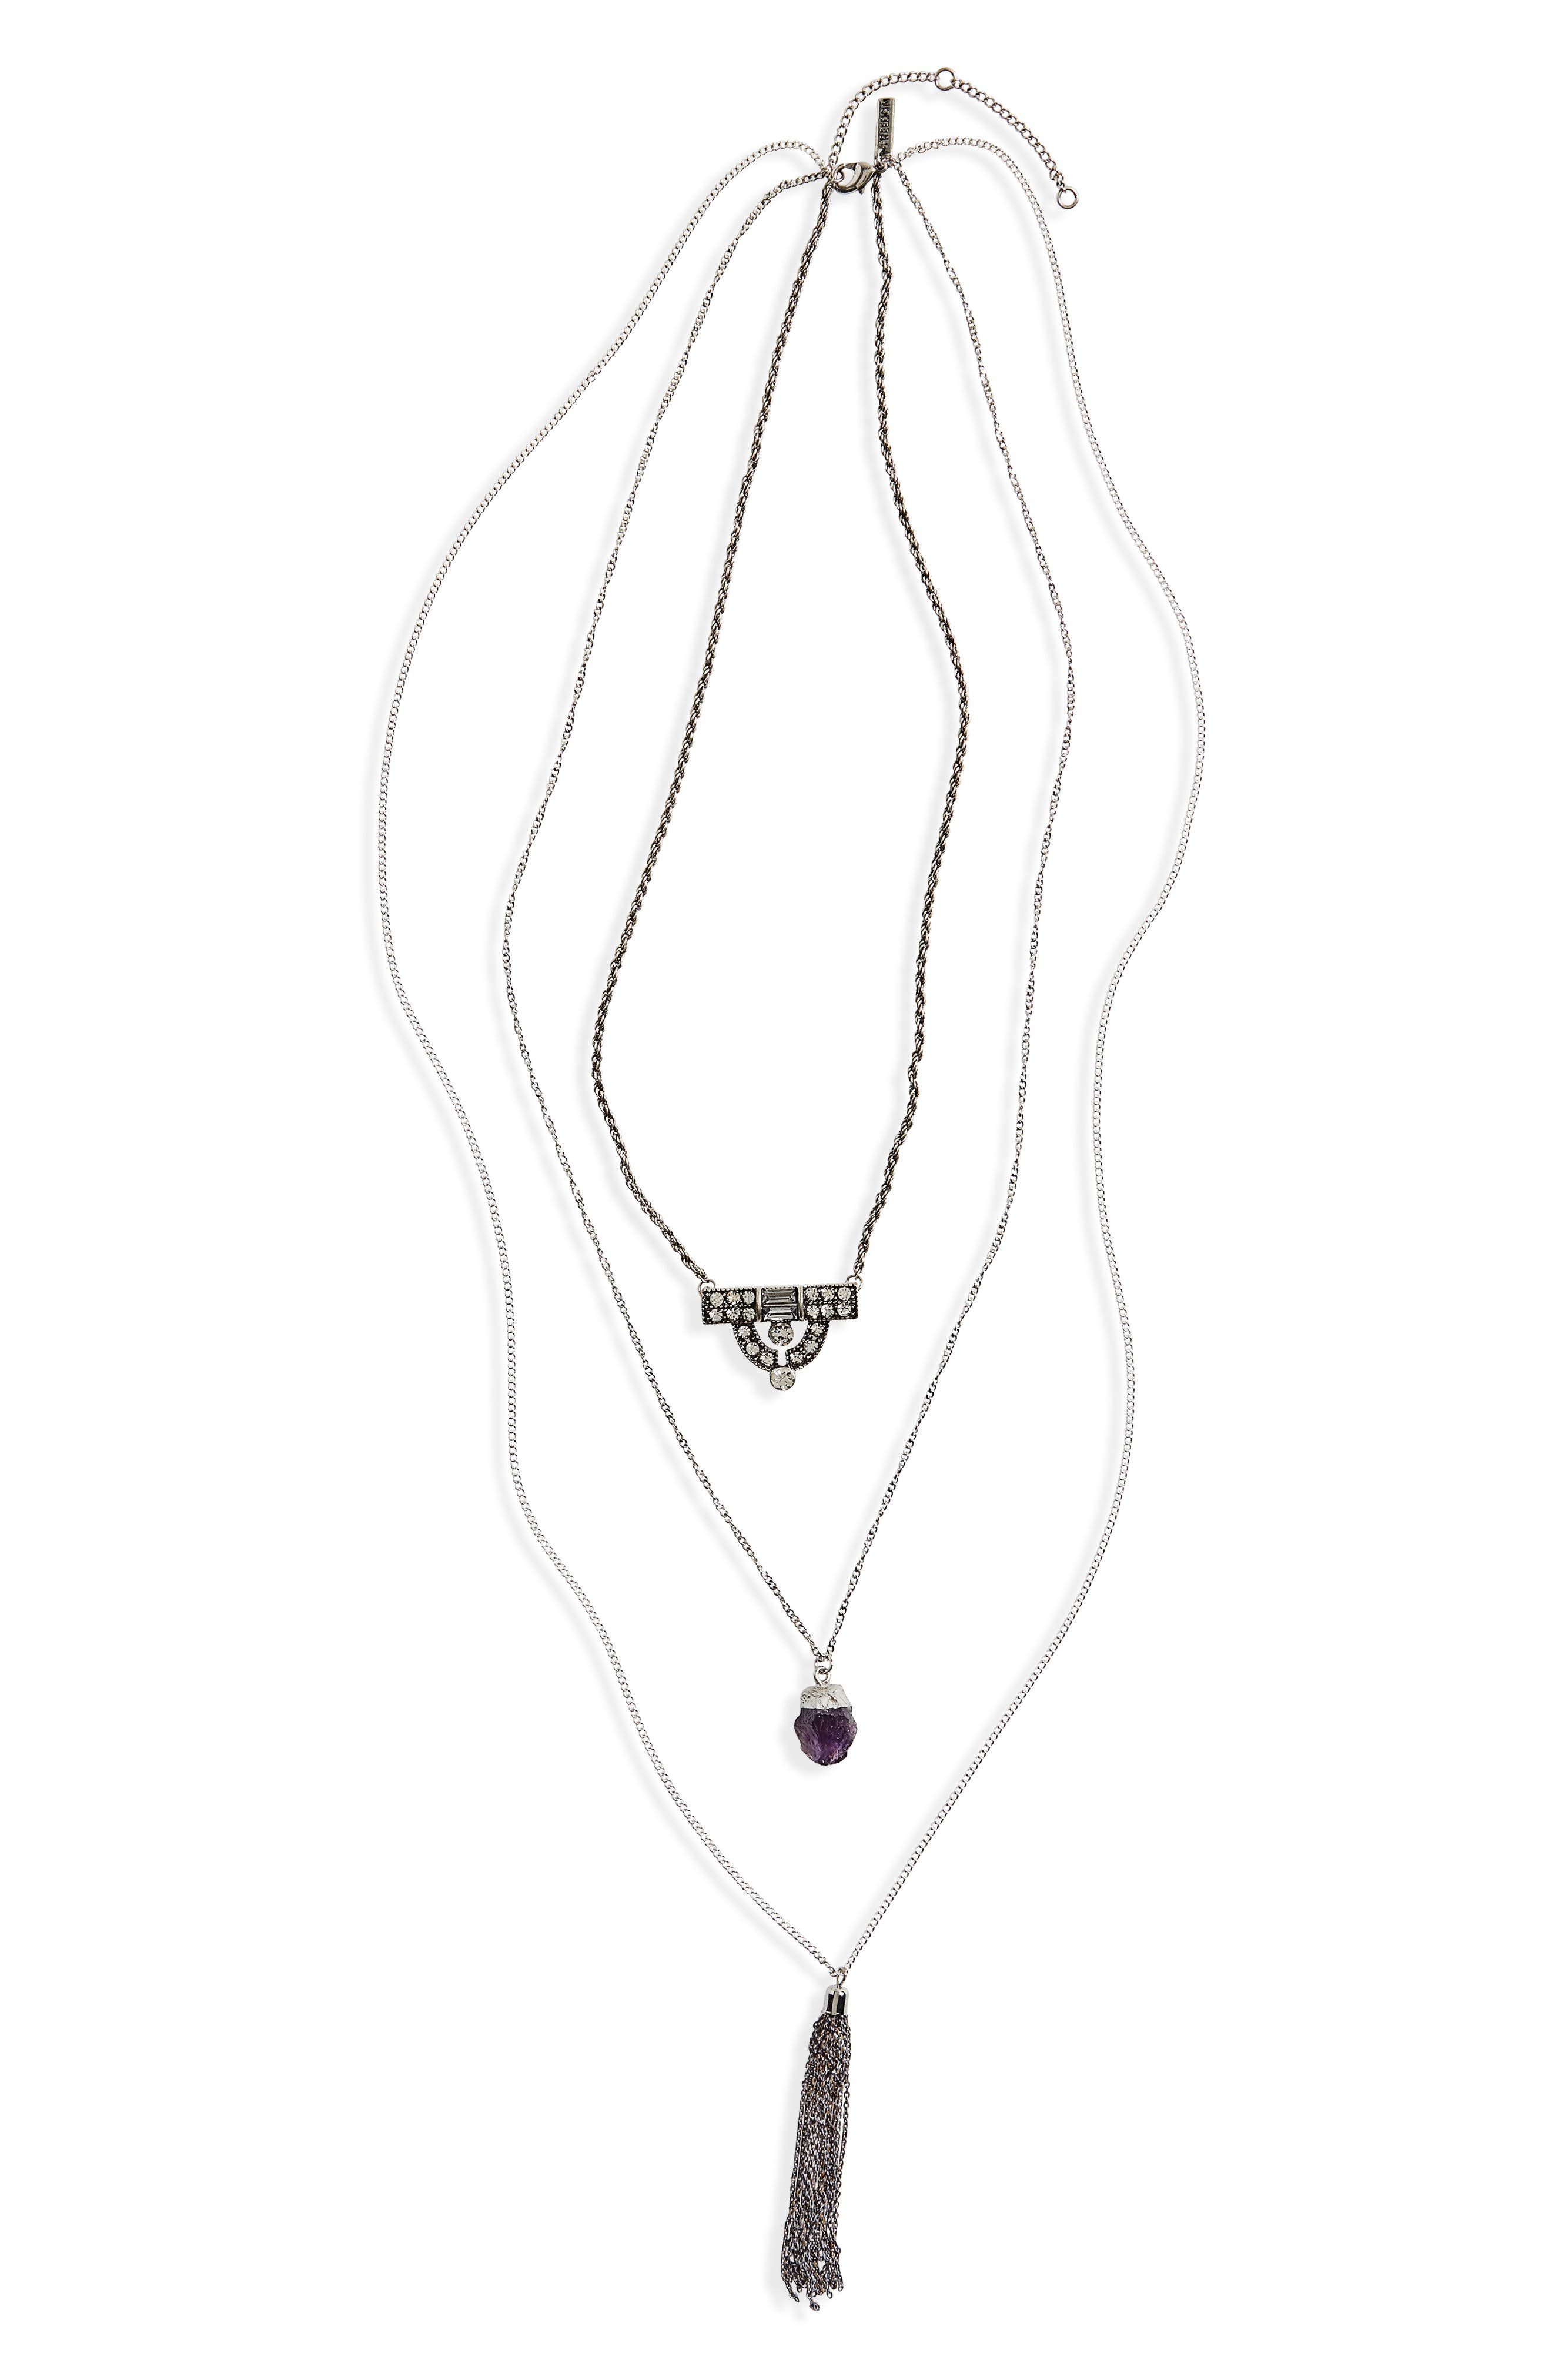 Main Image - Topshop Multistrand Pendant Necklace